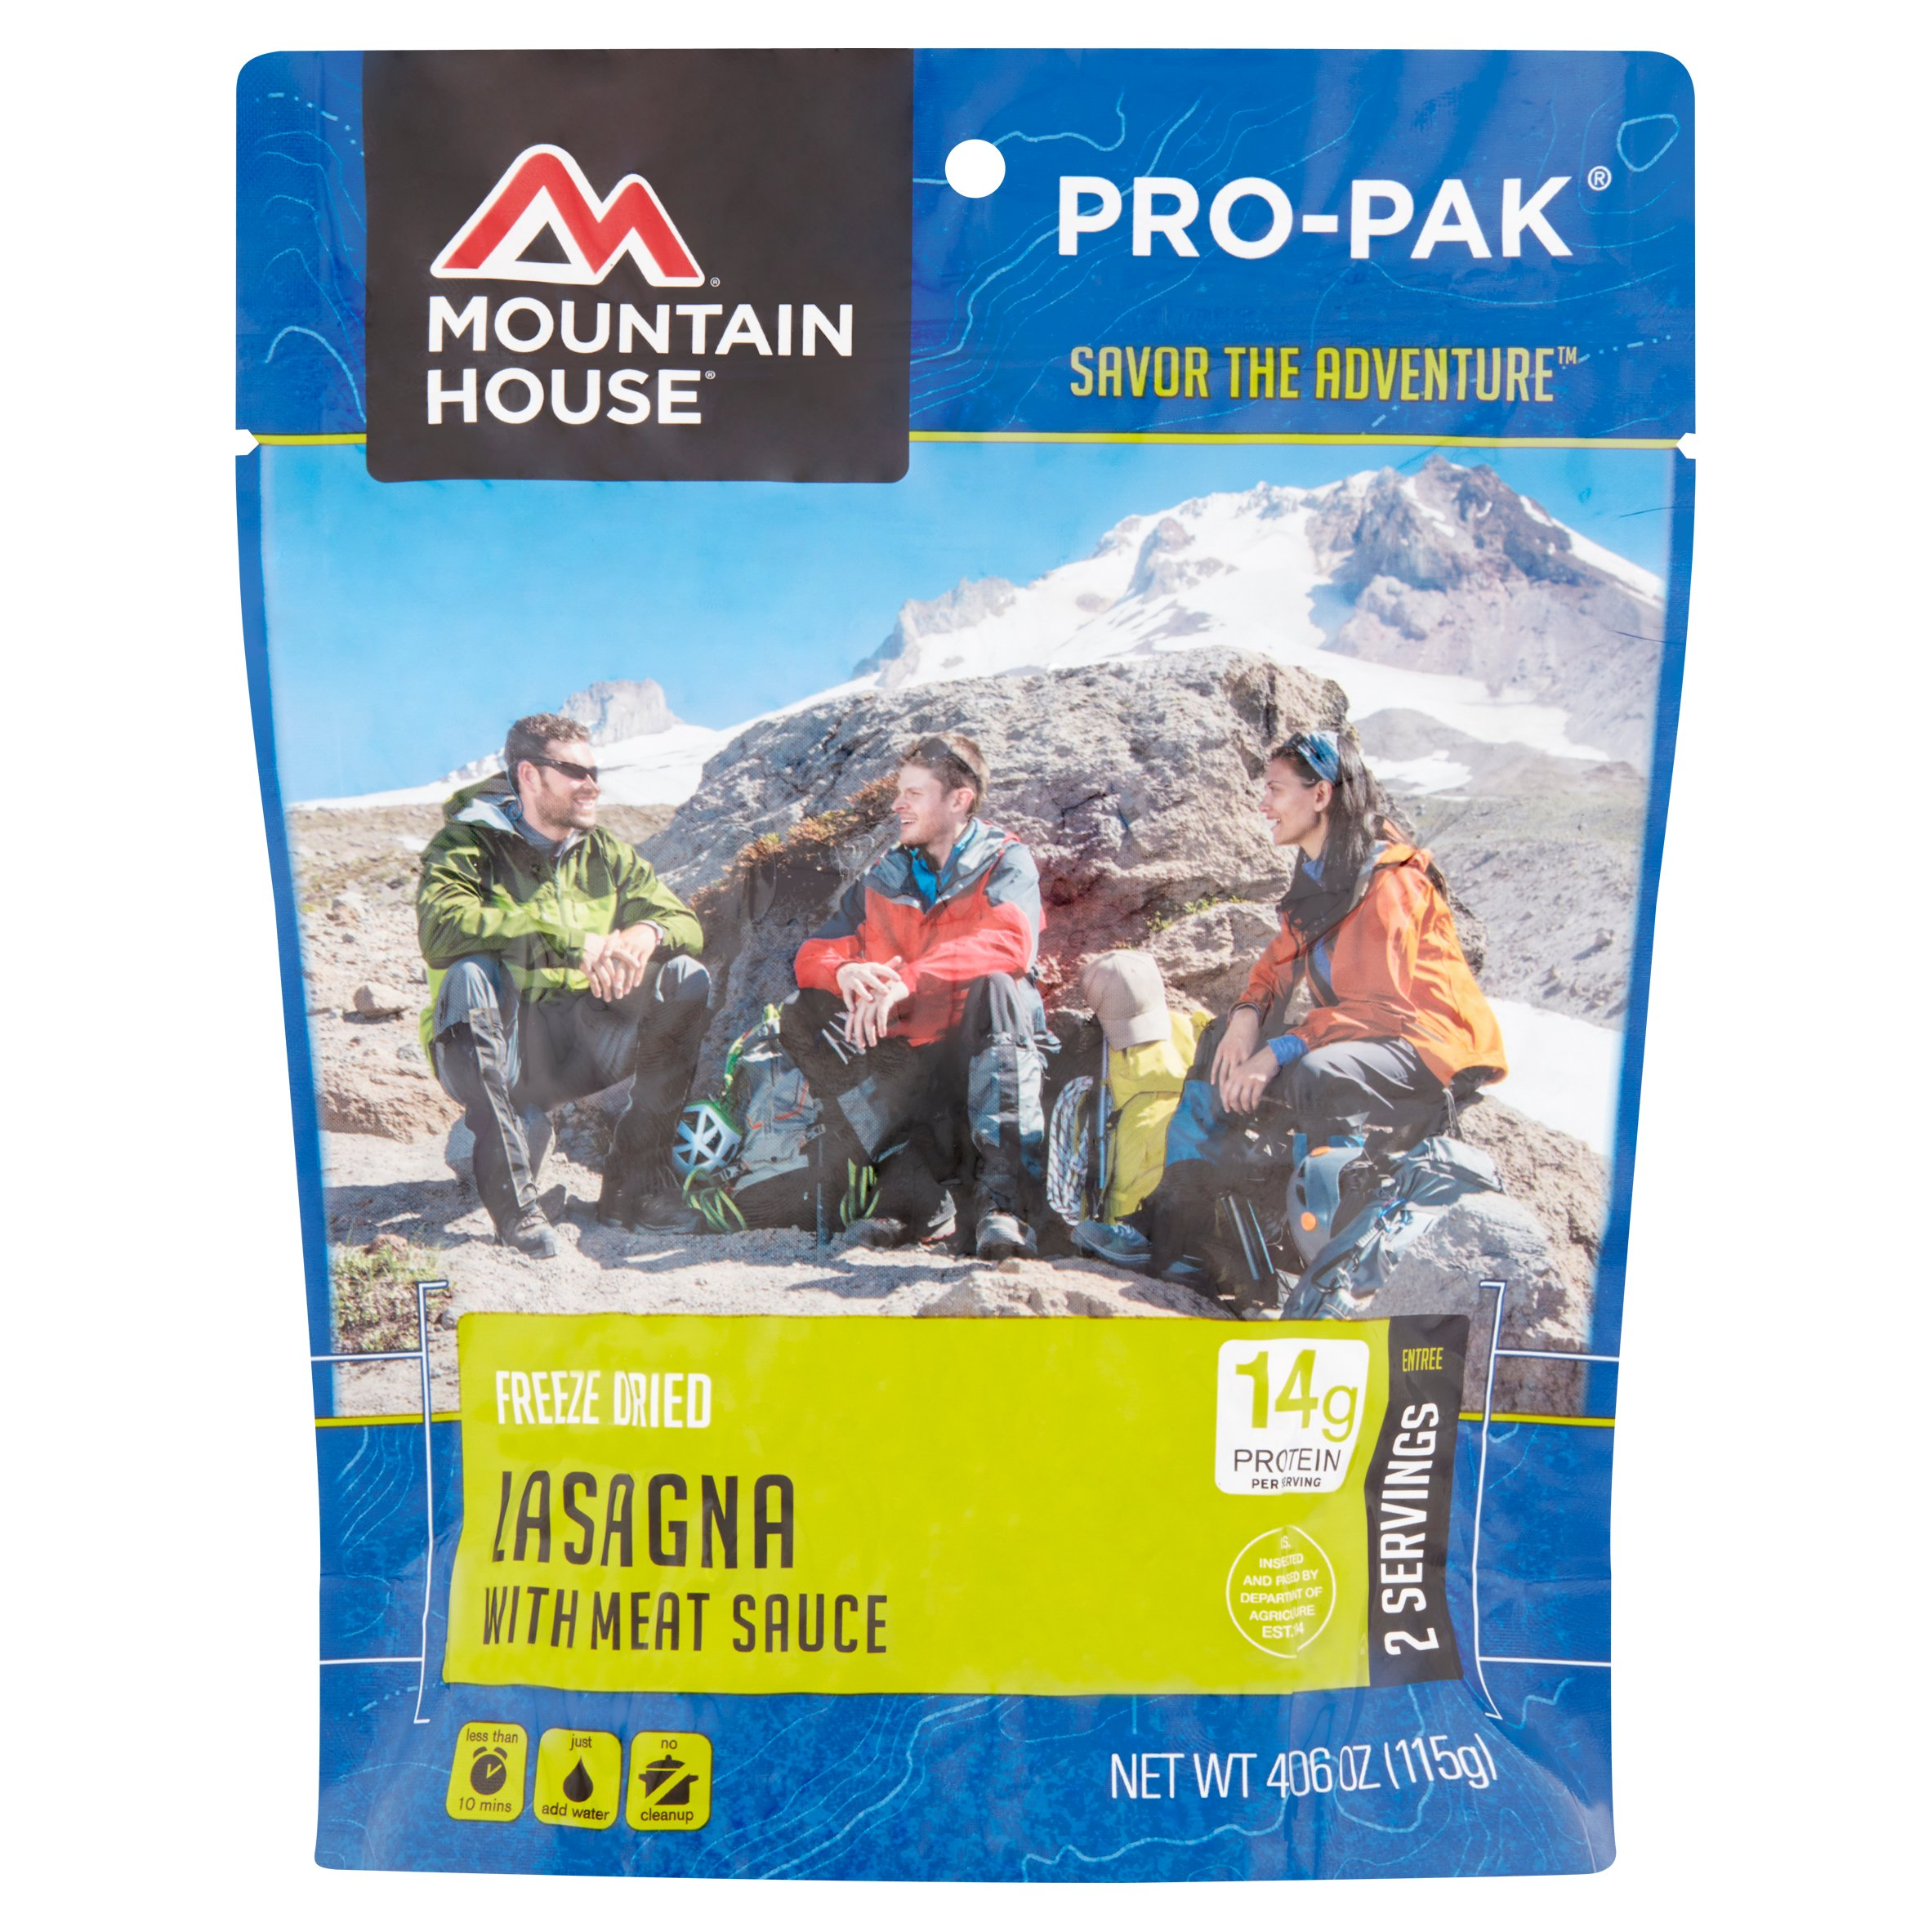 Mountain House Lasagna with Meat Sauce PRO-PAK by Mountain House is a division of OFD Foods, Inc.,